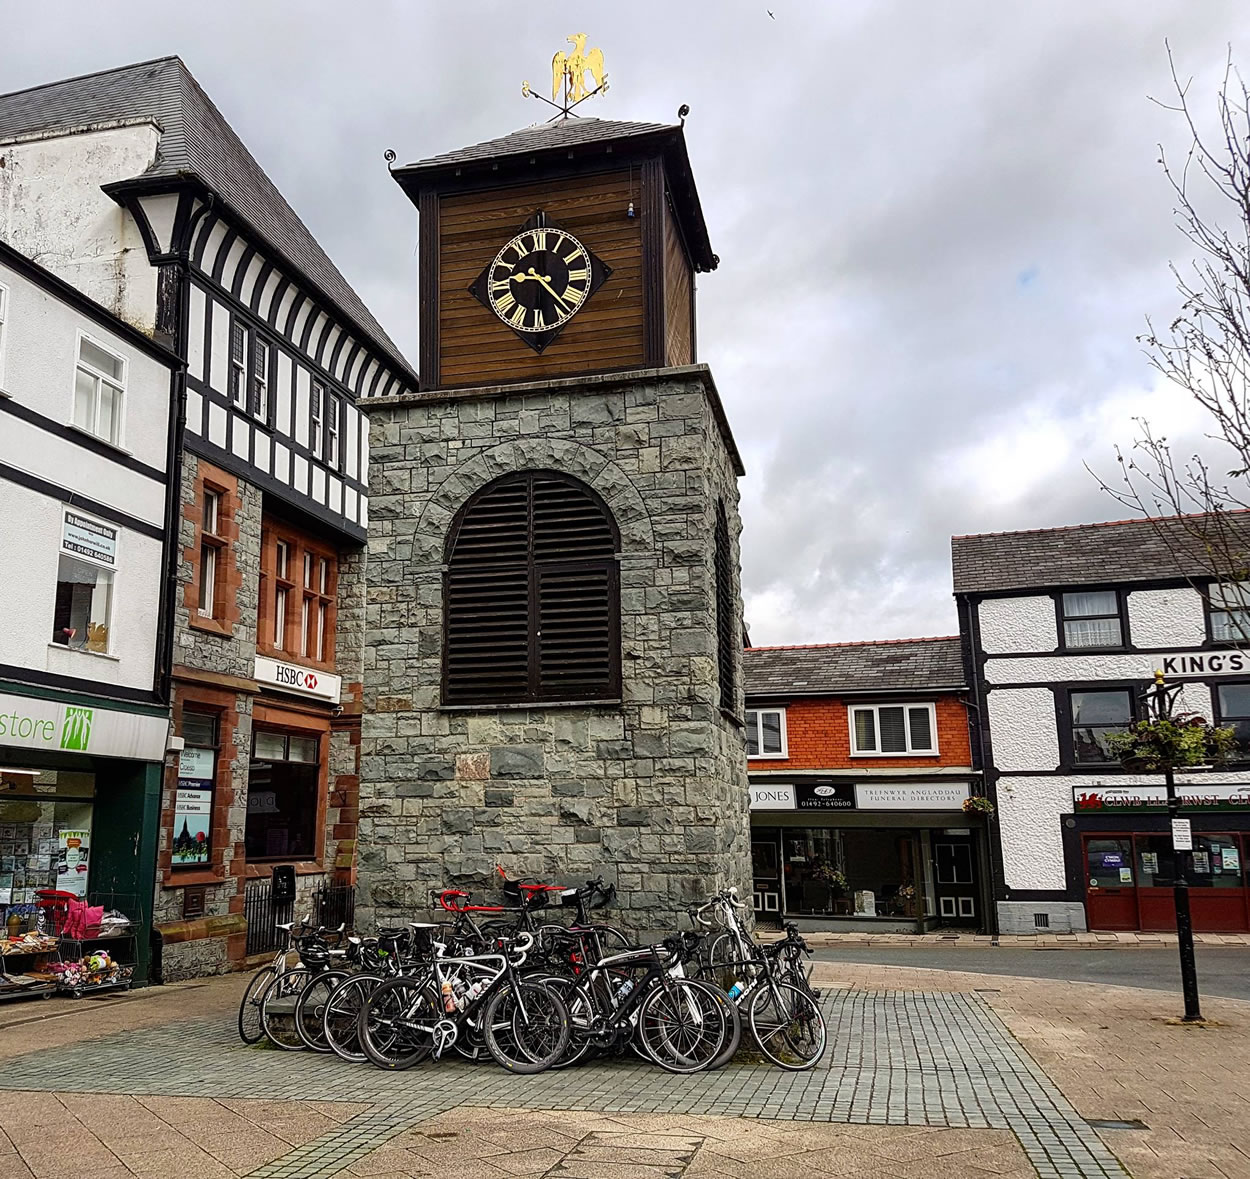 north wales village clock